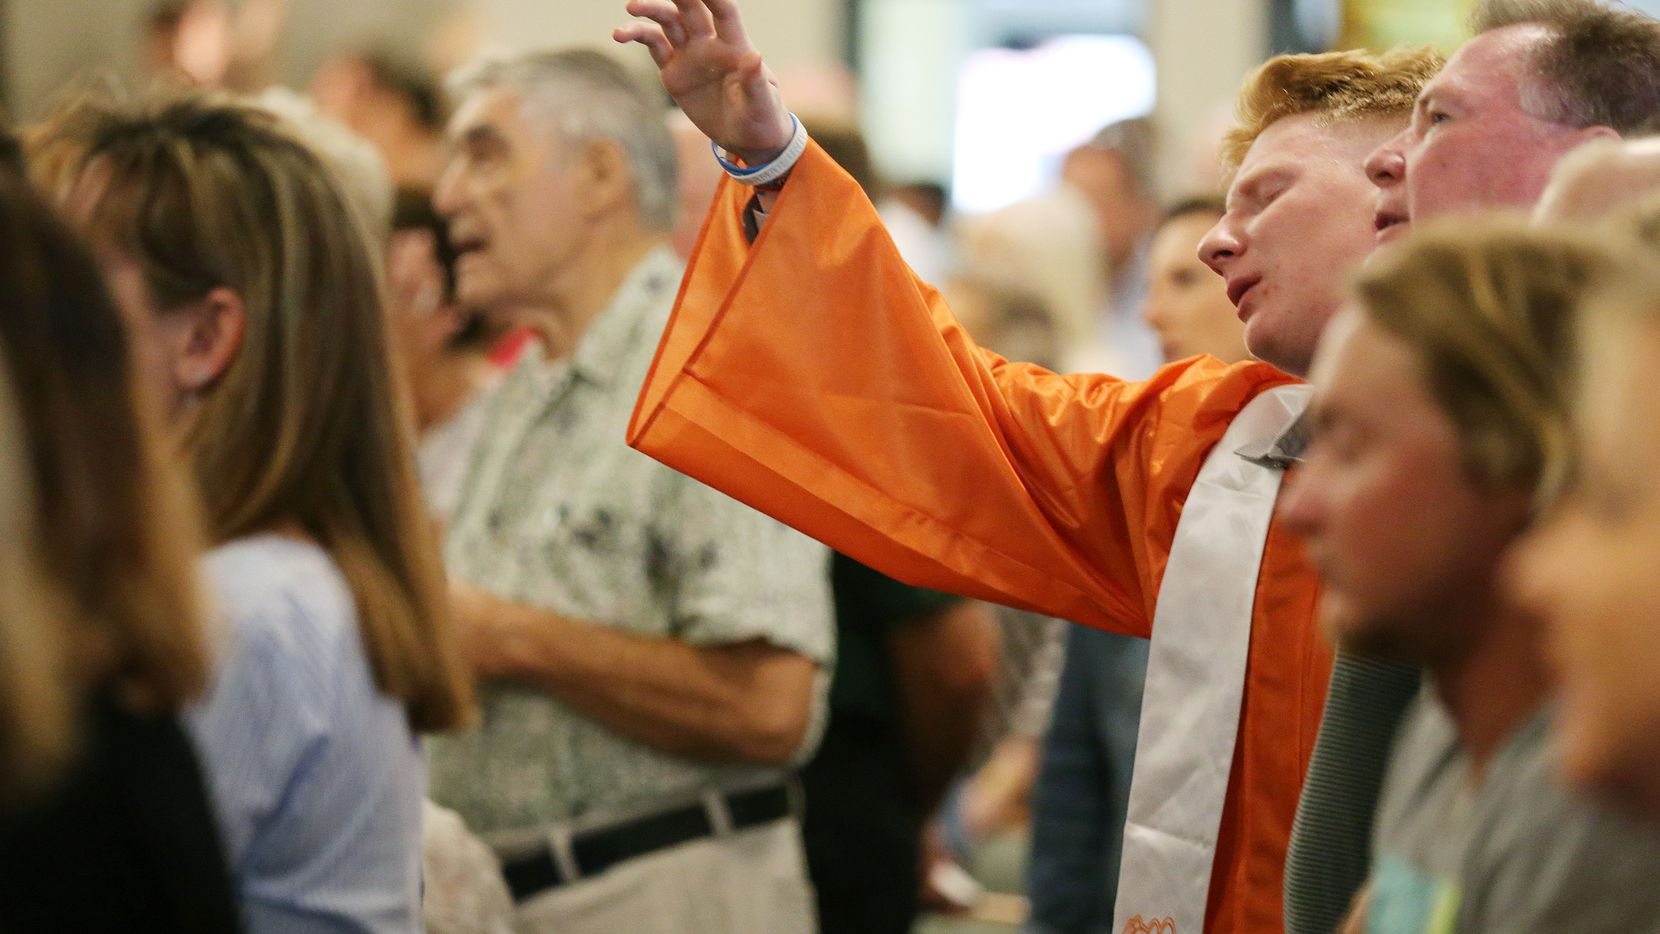 After being recognized with other graduating high school seniors, a student worships during service at Arcadia First Baptist Church in Santa Fe, Texas.